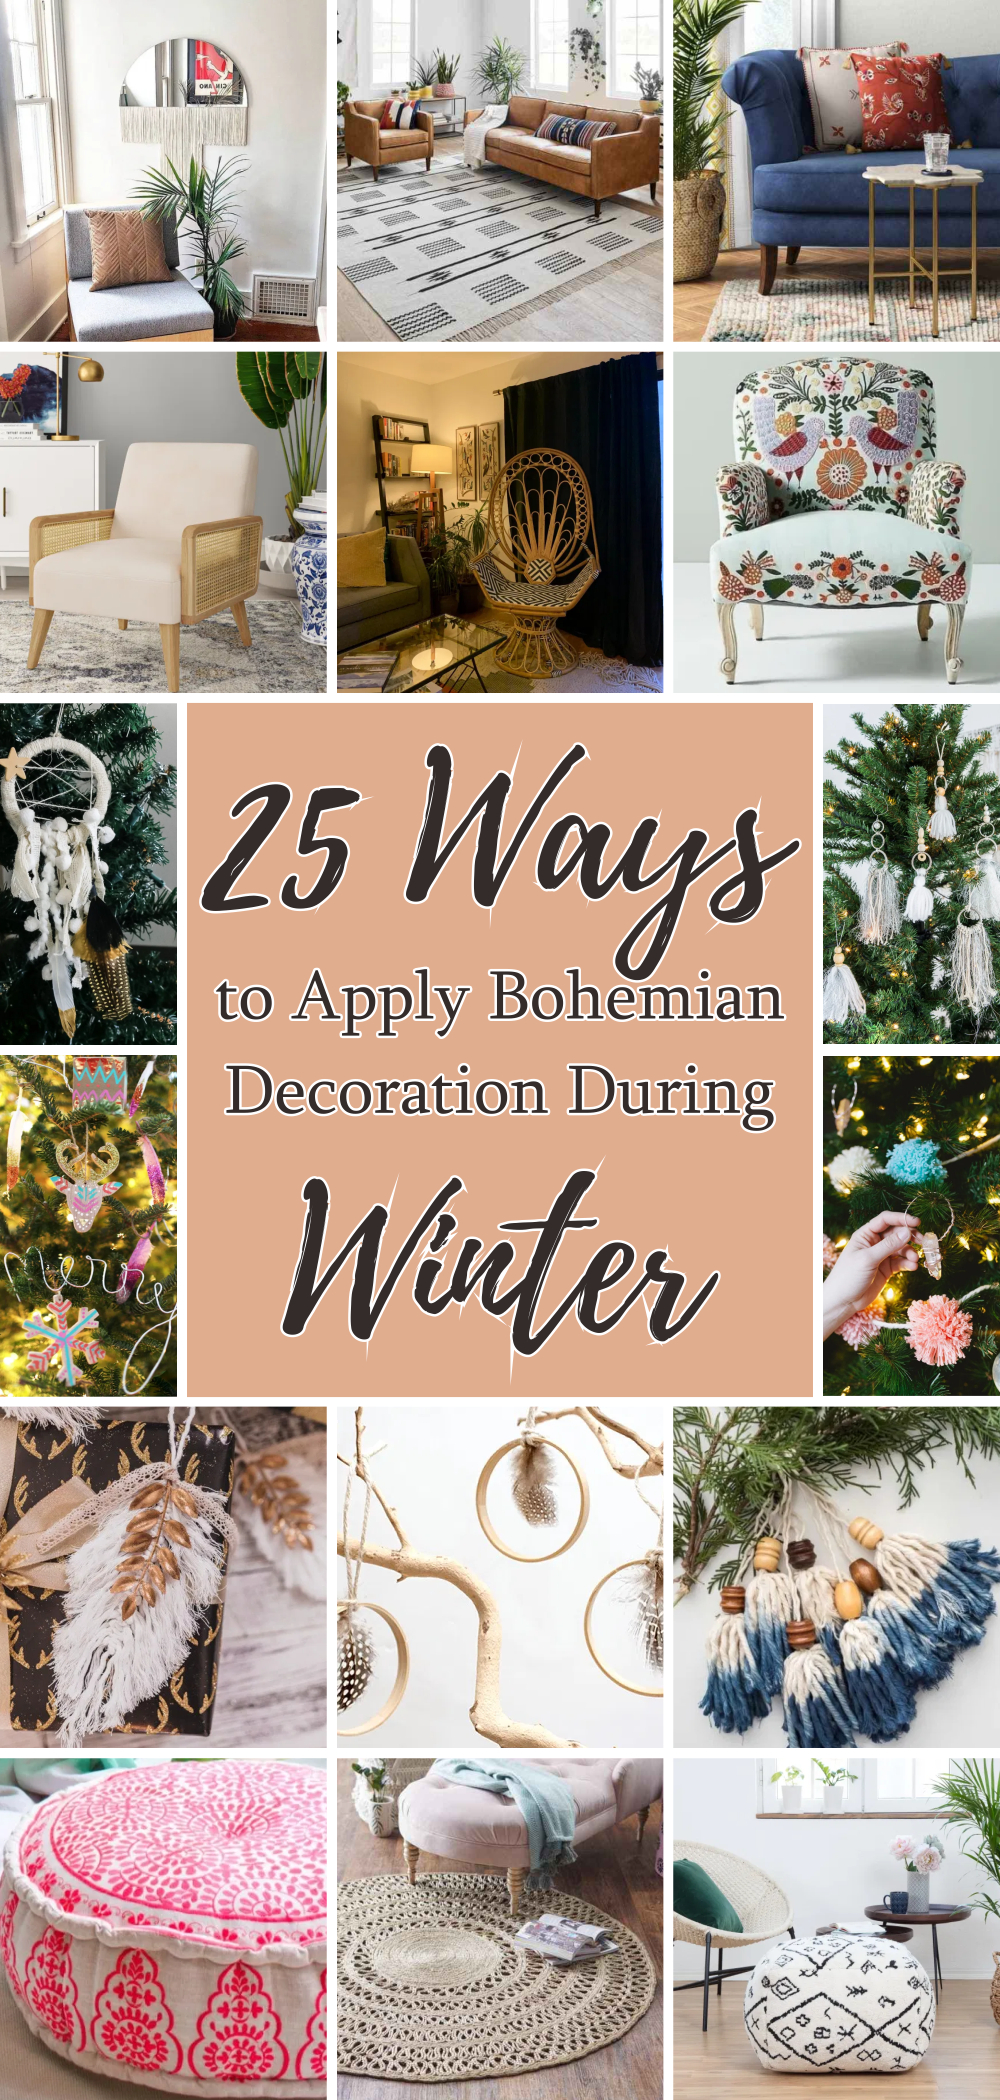 25 ways to apply bohemian decoration during winter 1